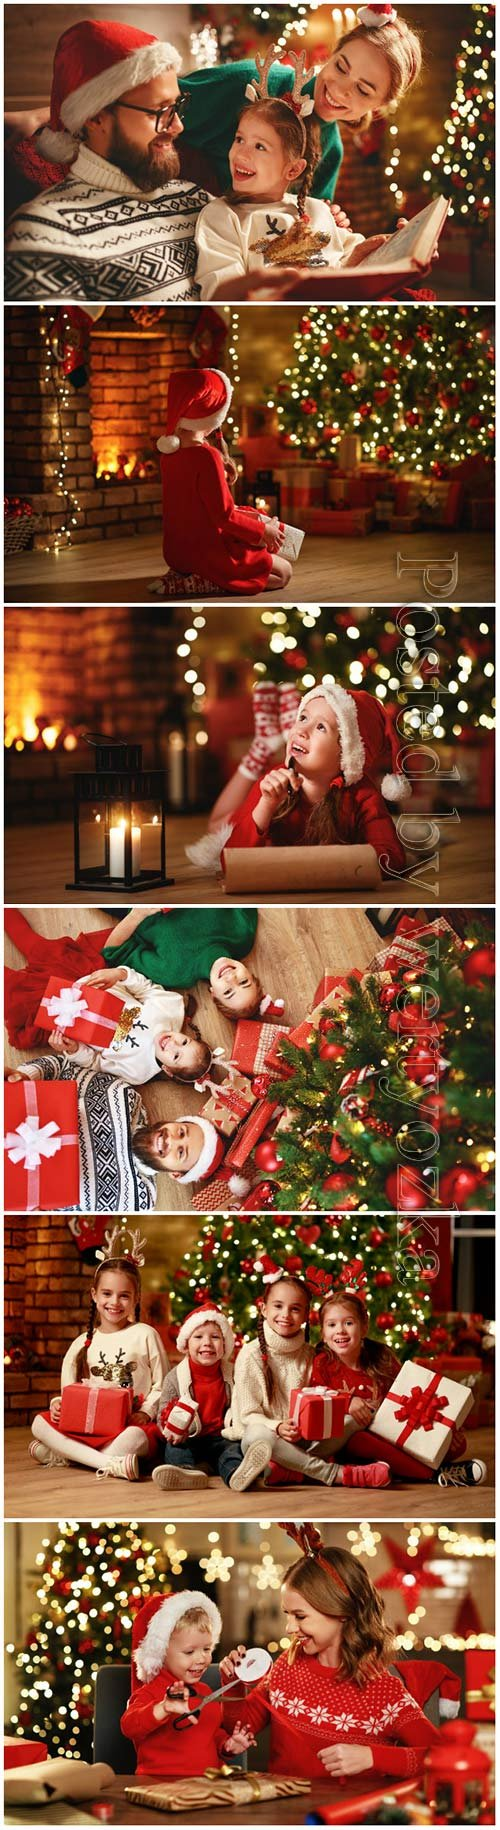 Family celebrates Christmas, New Year stock photo